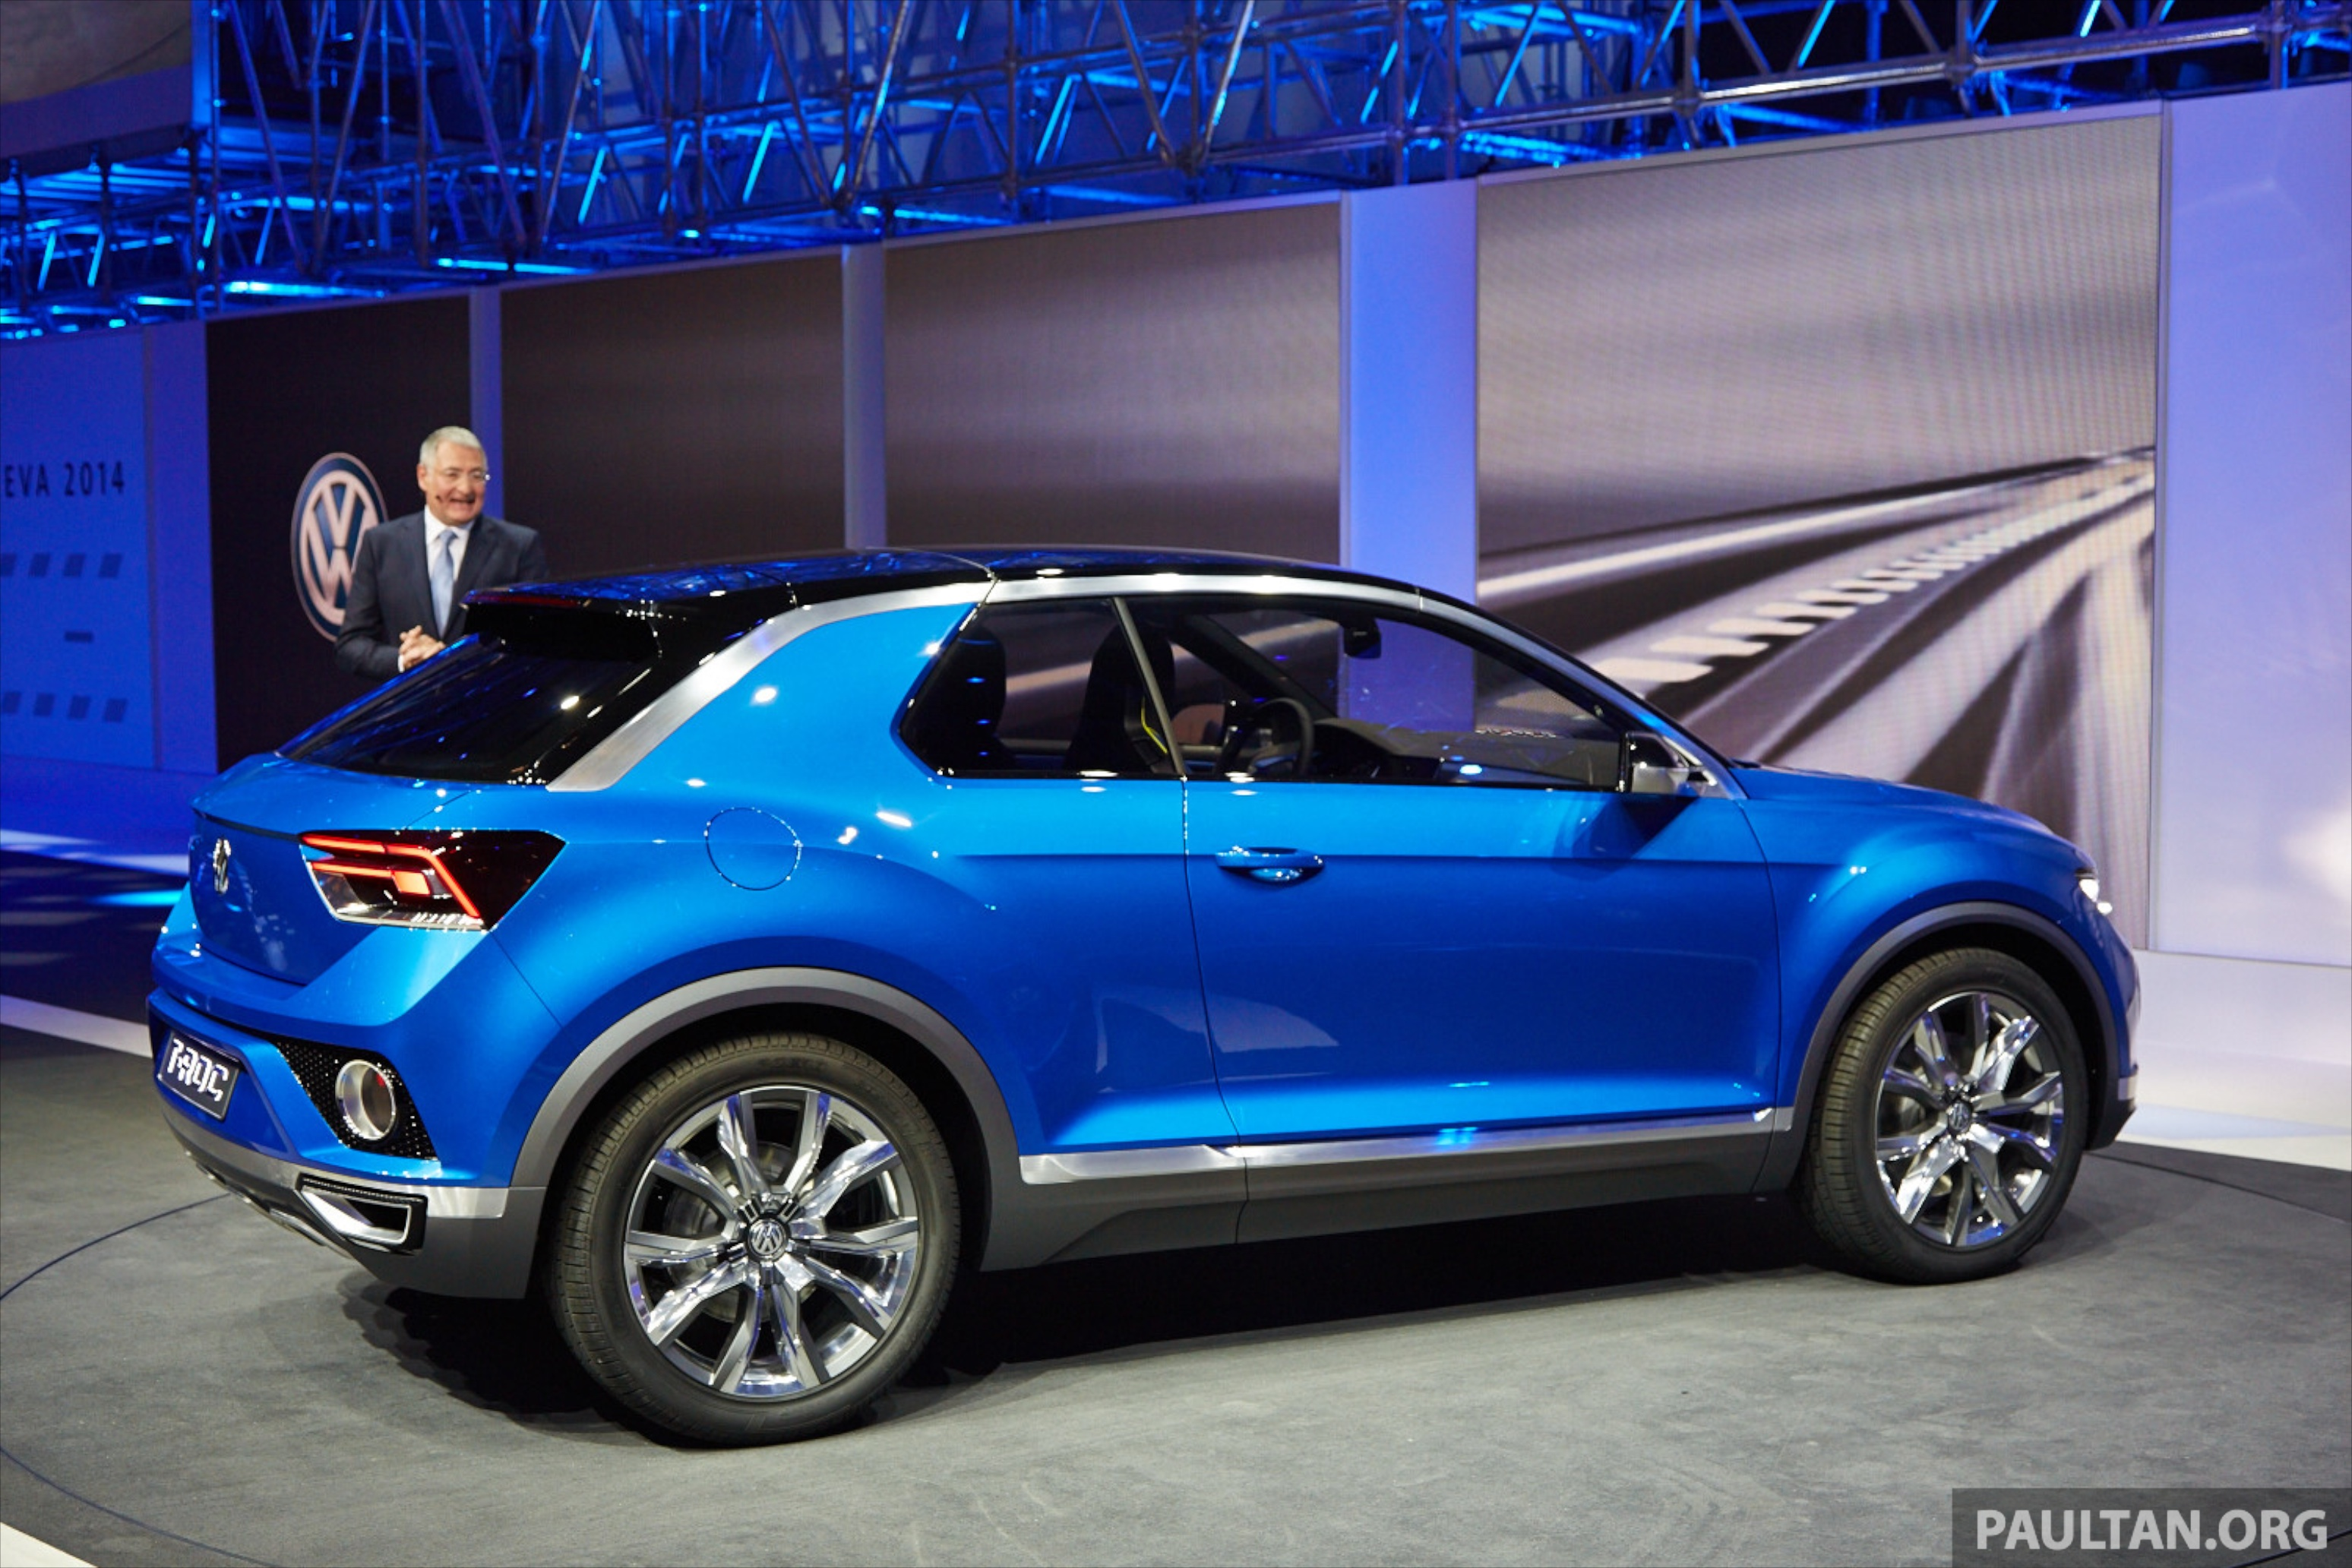 Volkswagen T Roc Concept Previews Upcoming Suv Paul Tan